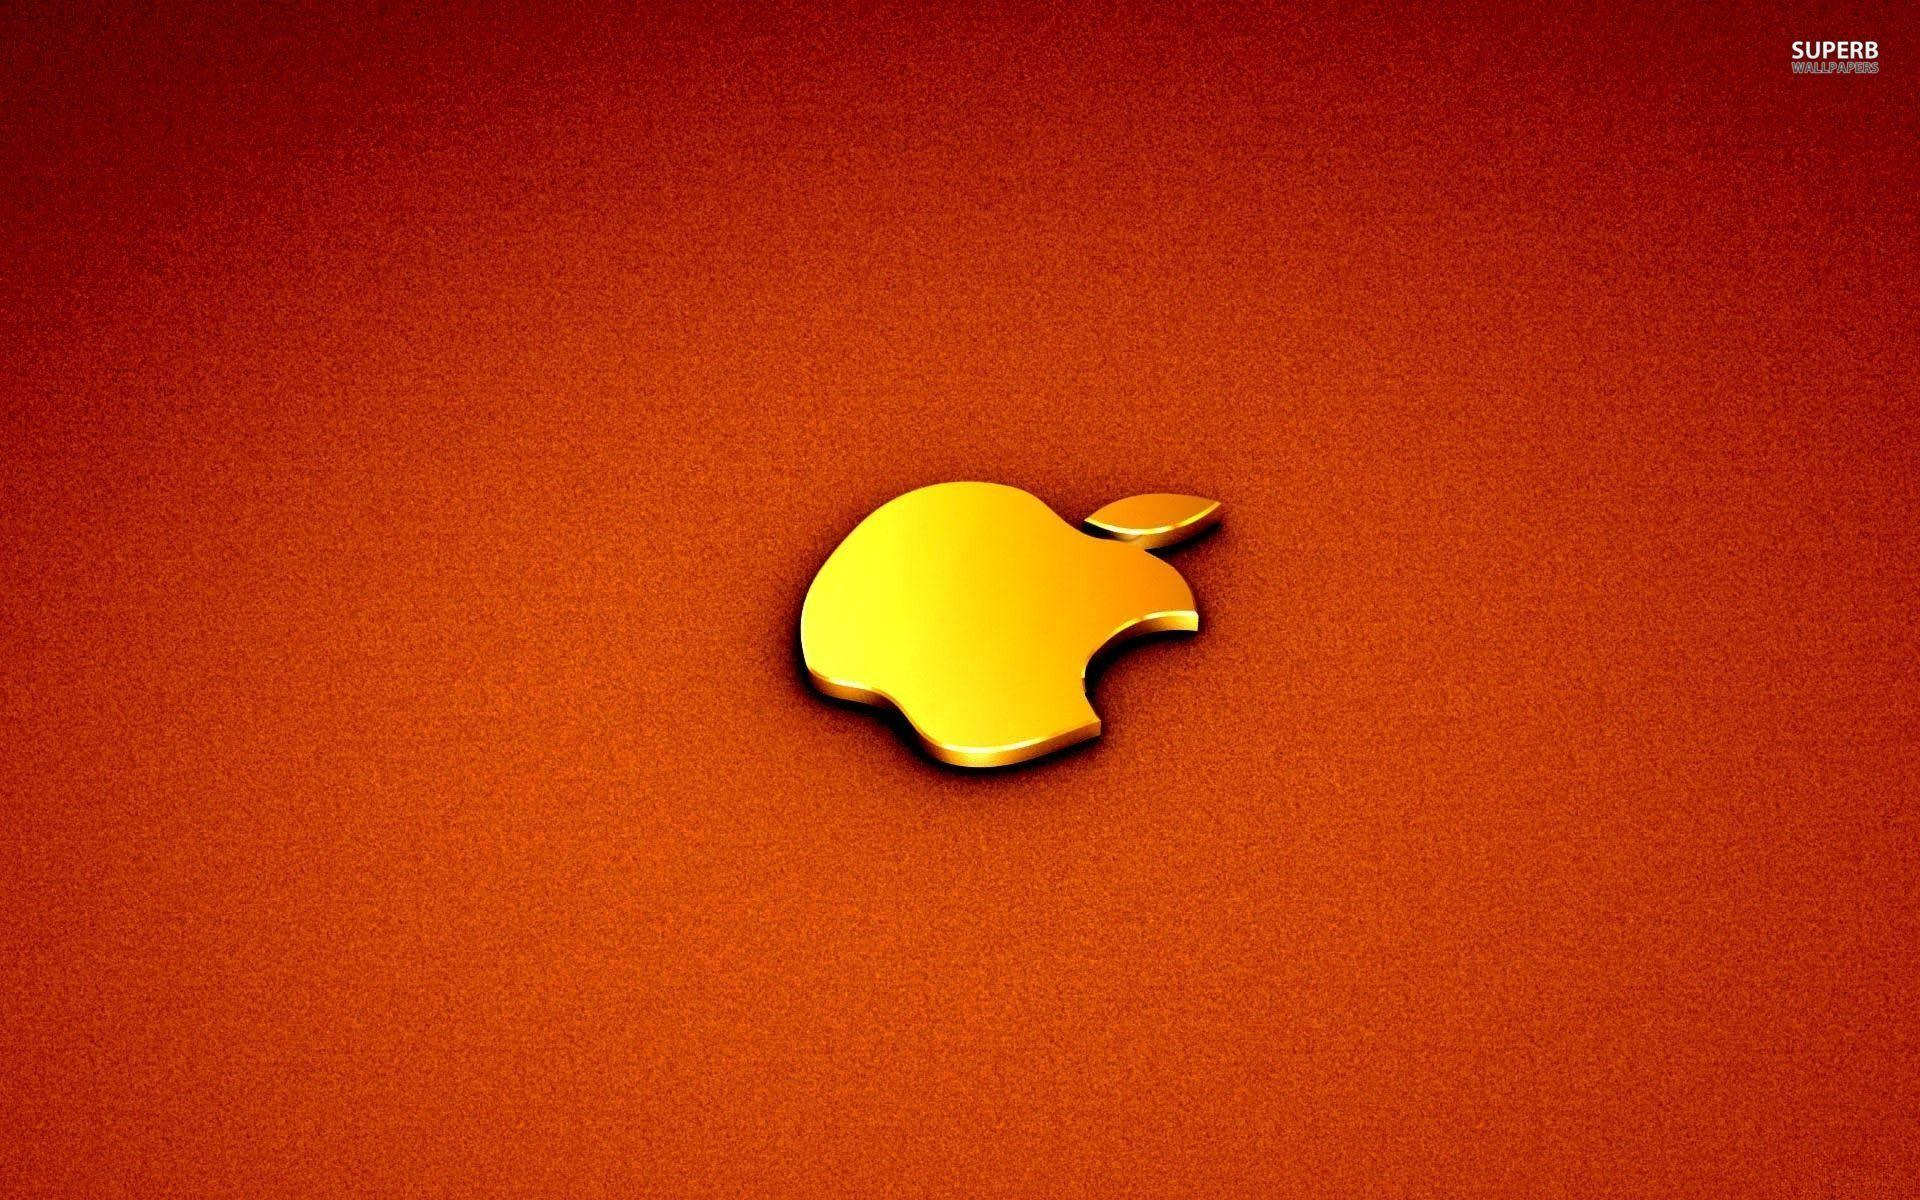 Red Apple Logo Wallpapers Image & Pictures